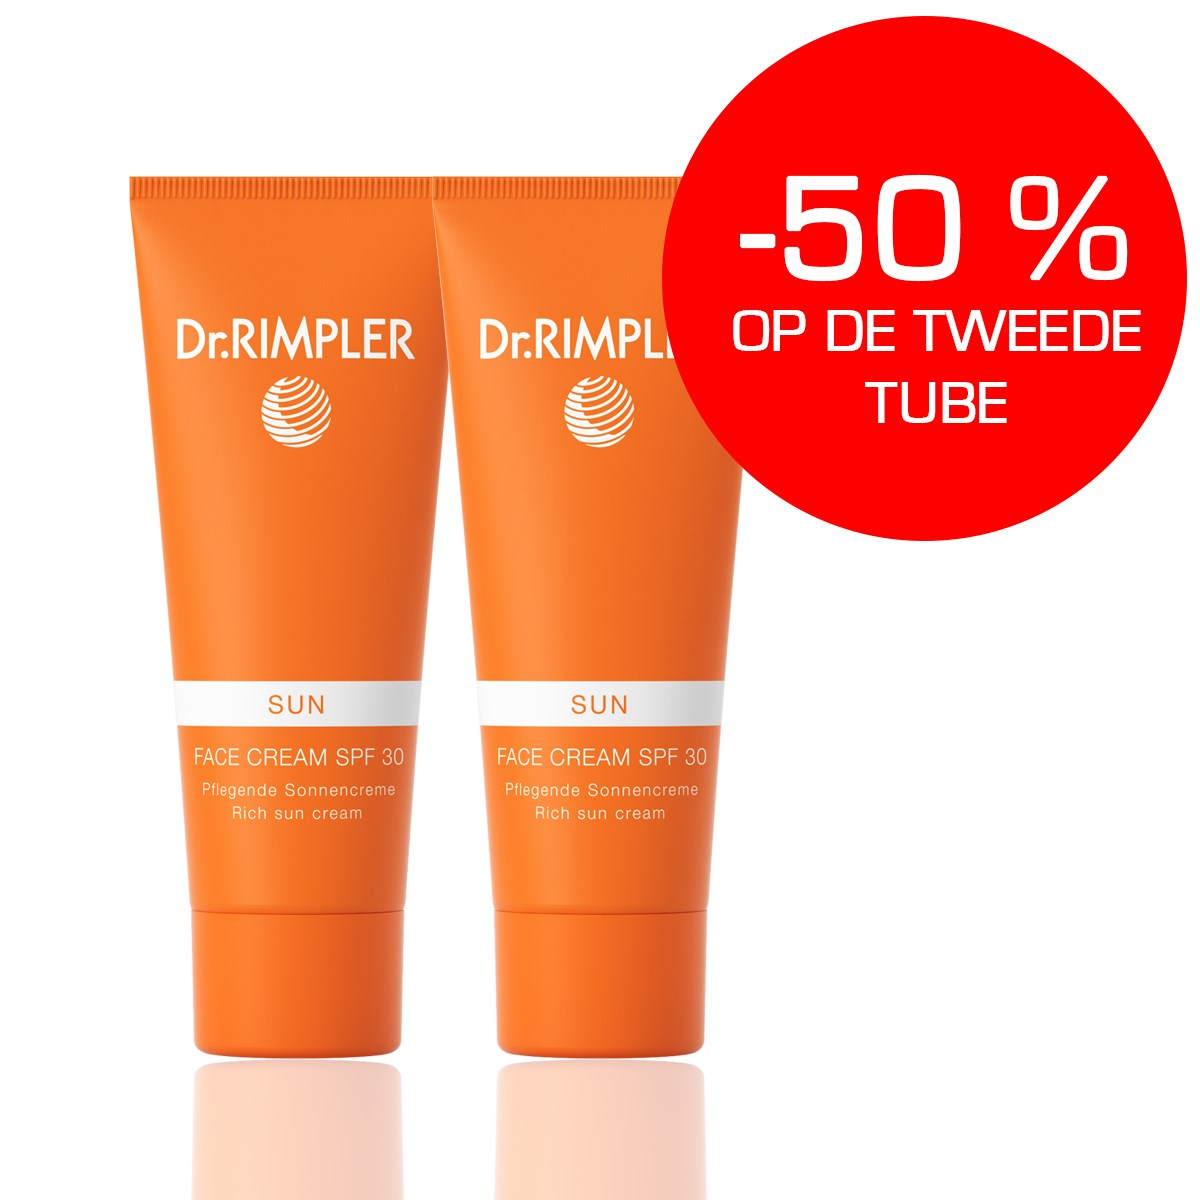 DR RIMPLER SUN FACE SPF30 DUO PACK 2x75ml